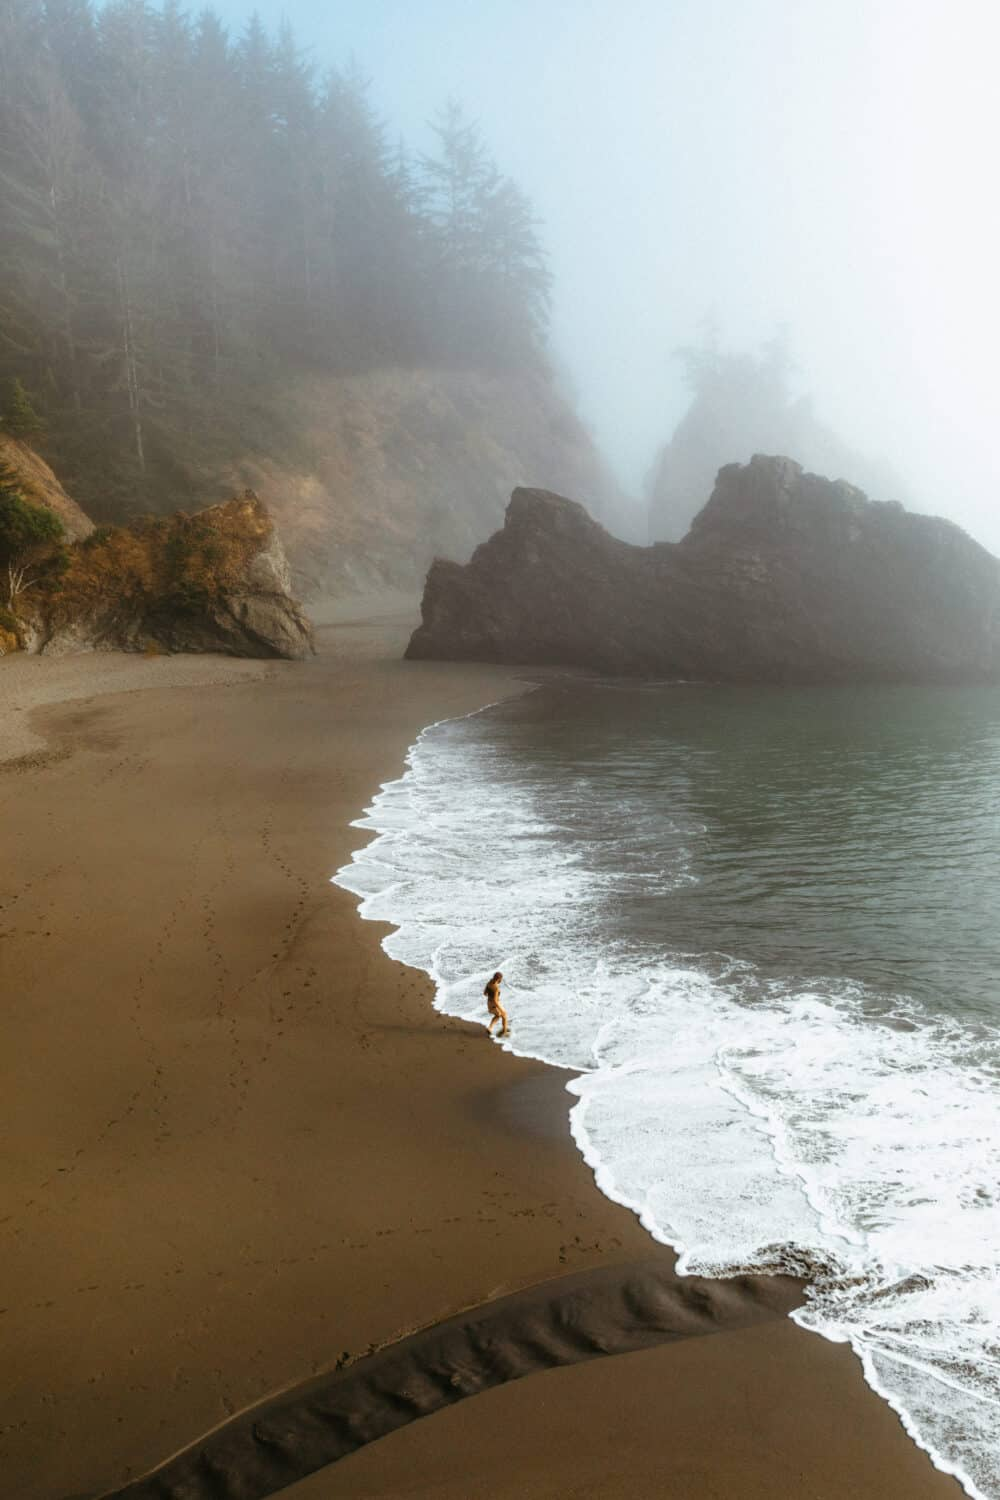 Secret Beach in Samuel H Boardman Scenic Corridor